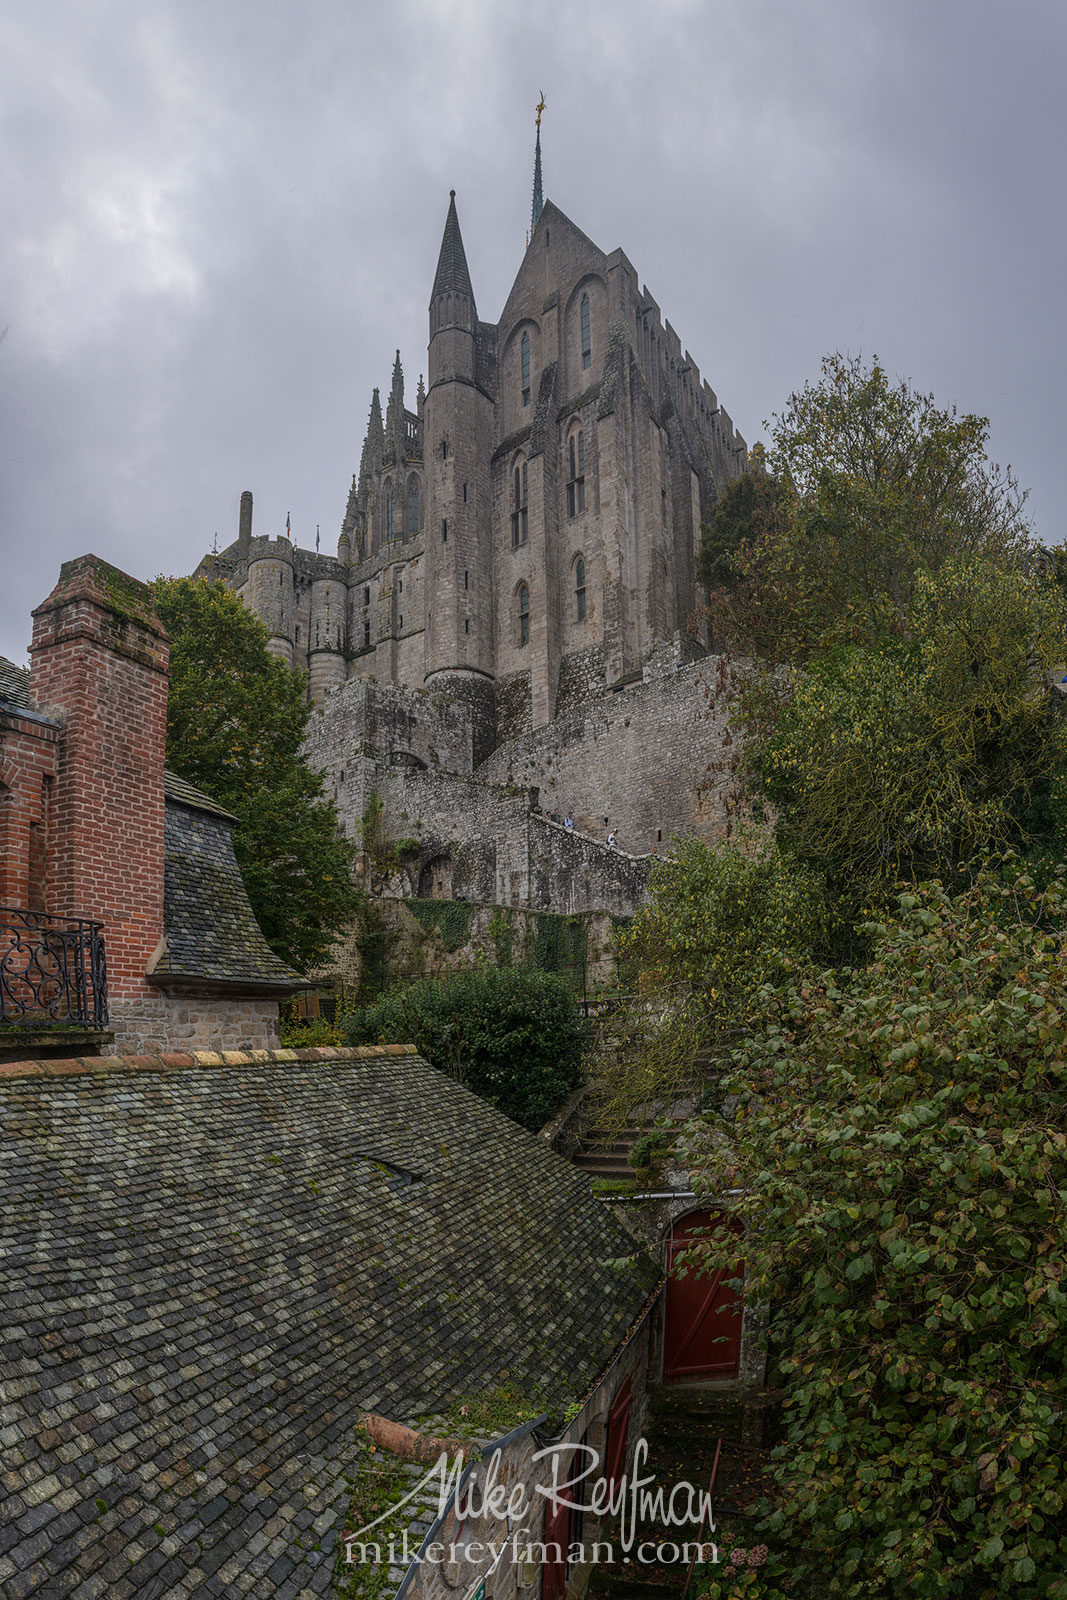 Le Mont-Saint-Michel Island and Benedictine Abbey. Normandy, France SM_MR50A1004-VerticalPano - Le Mont Saint Michel Island and Benedictine Abbey, Normandy, France - Mike Reyfman Photography